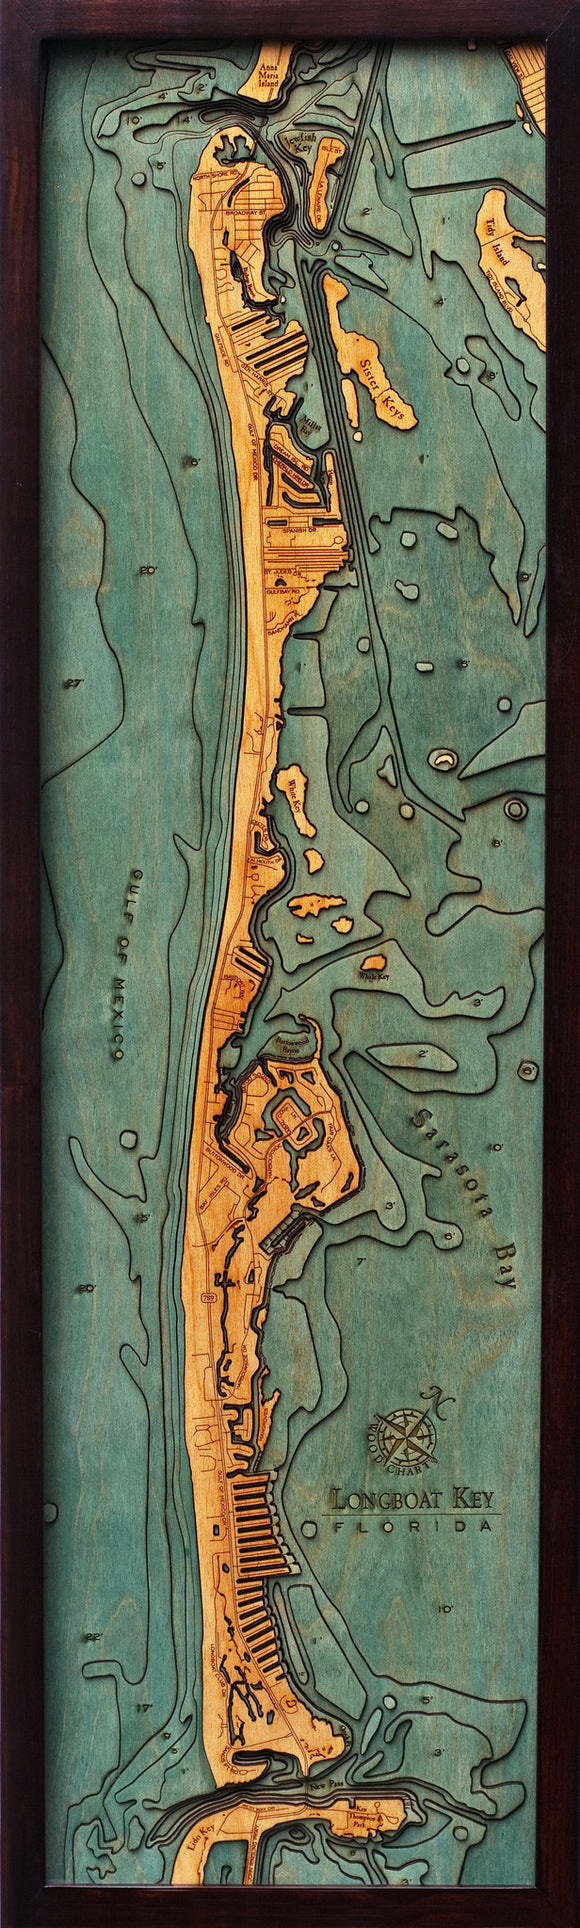 Wood Map | Longboat Key | Florida